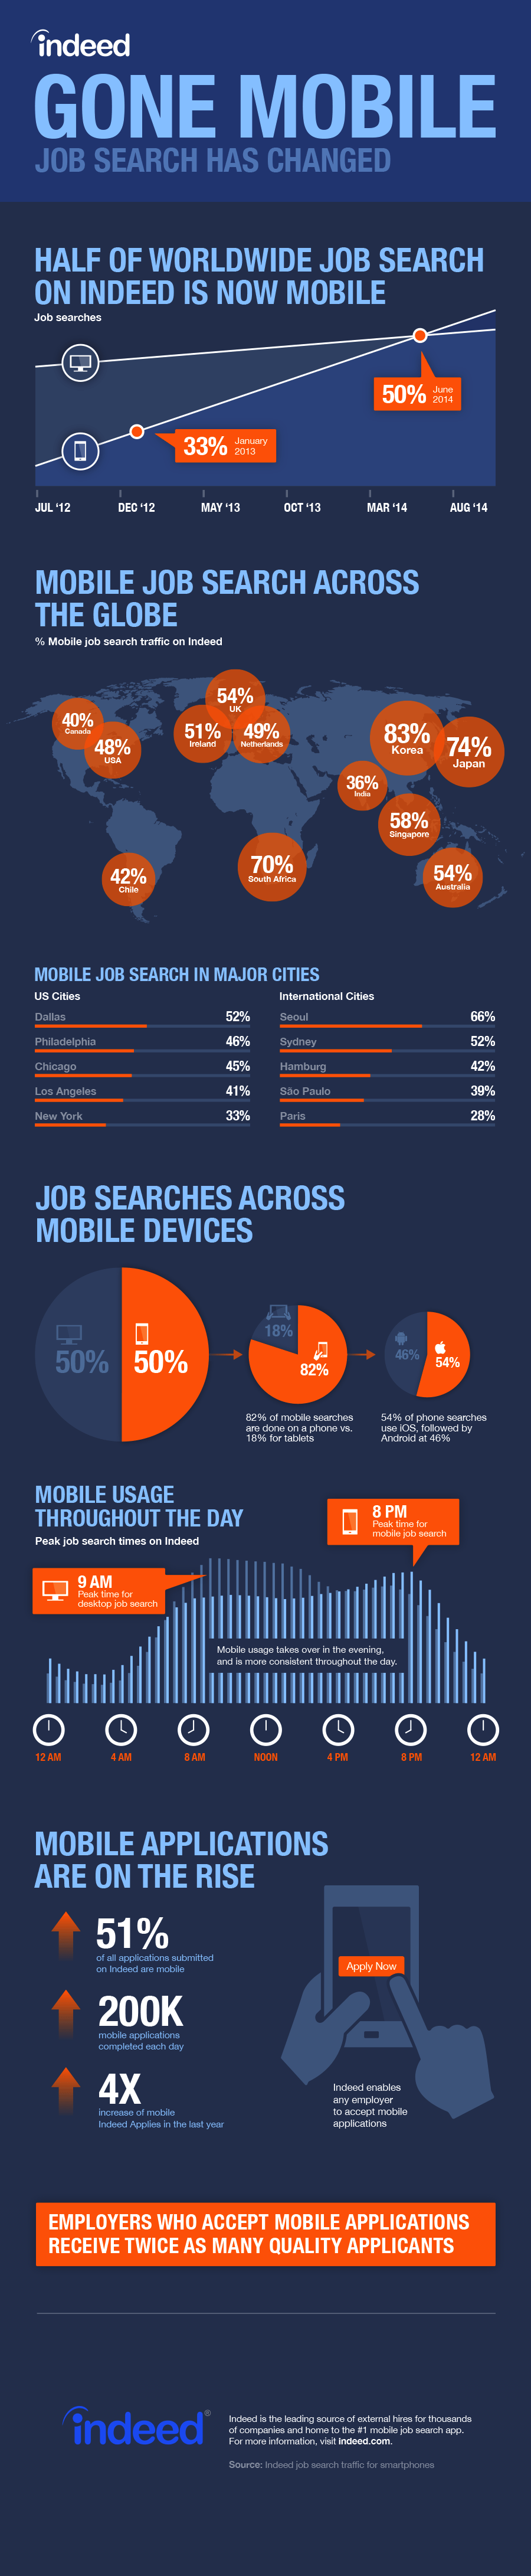 job search has changed it s time to go mobile mobile job search